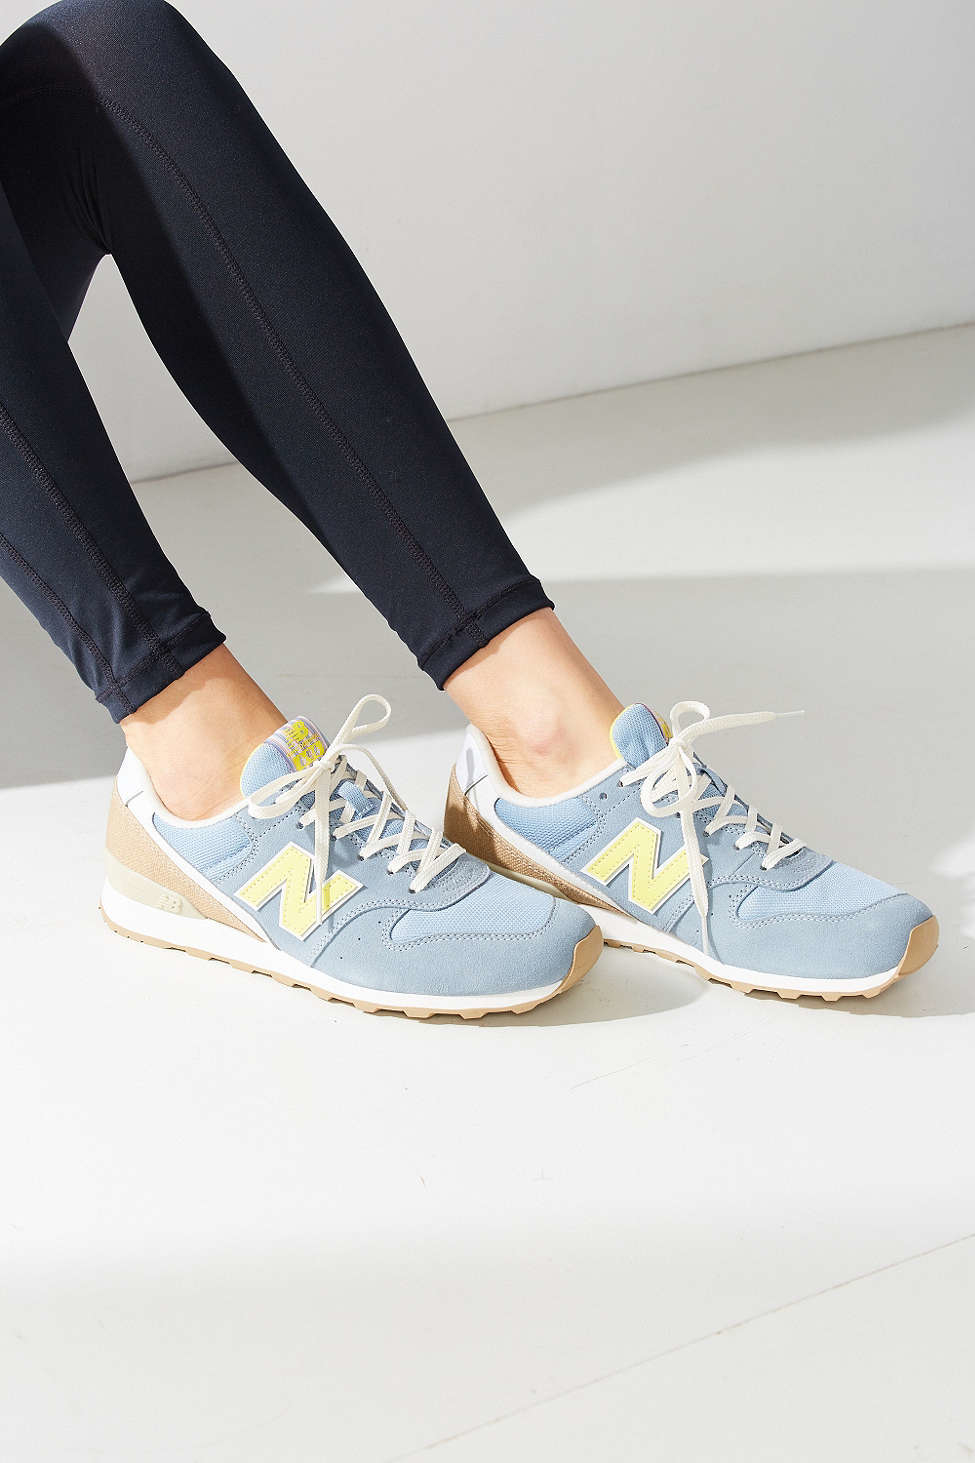 bd2b59158e907 New Balance 696 Lakeview Running Sneaker in Blue - Lyst